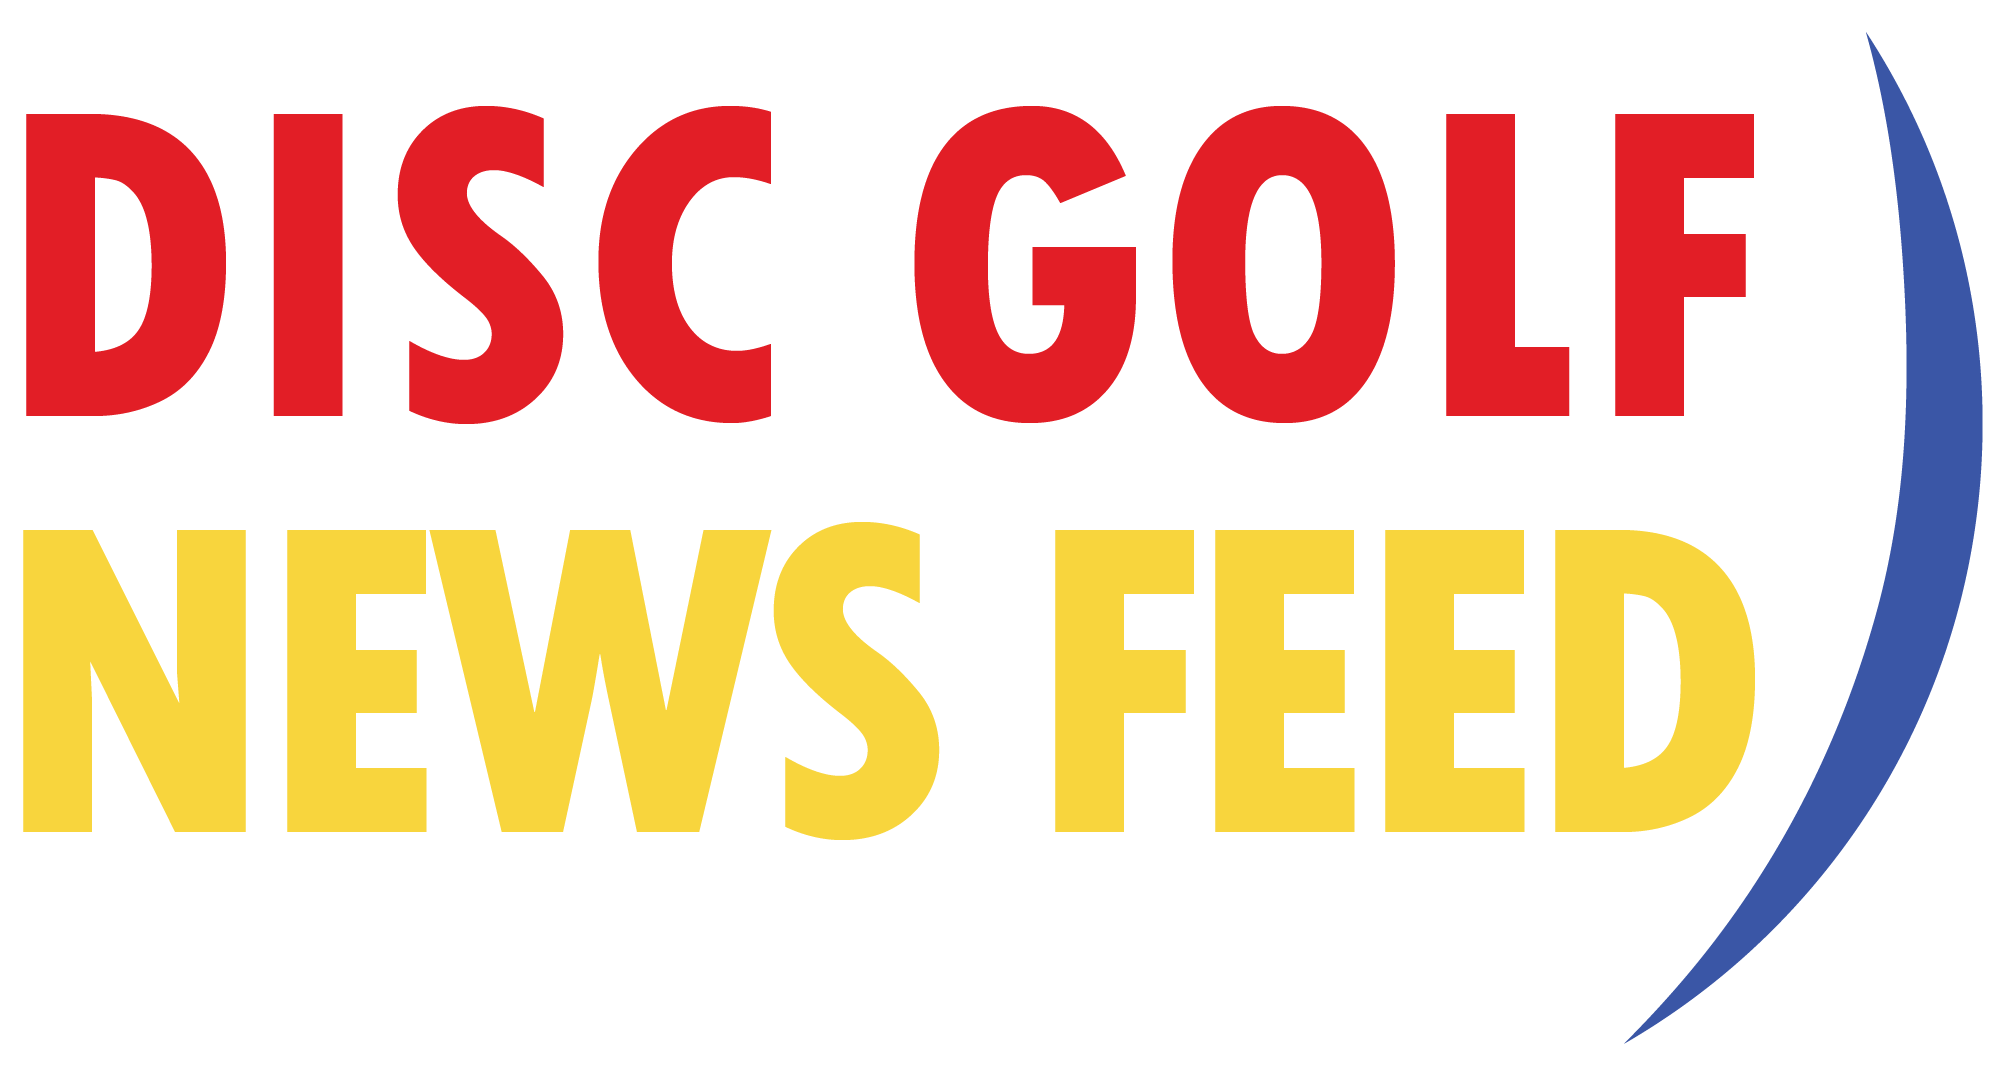 DISC GOLF NEWS FEED